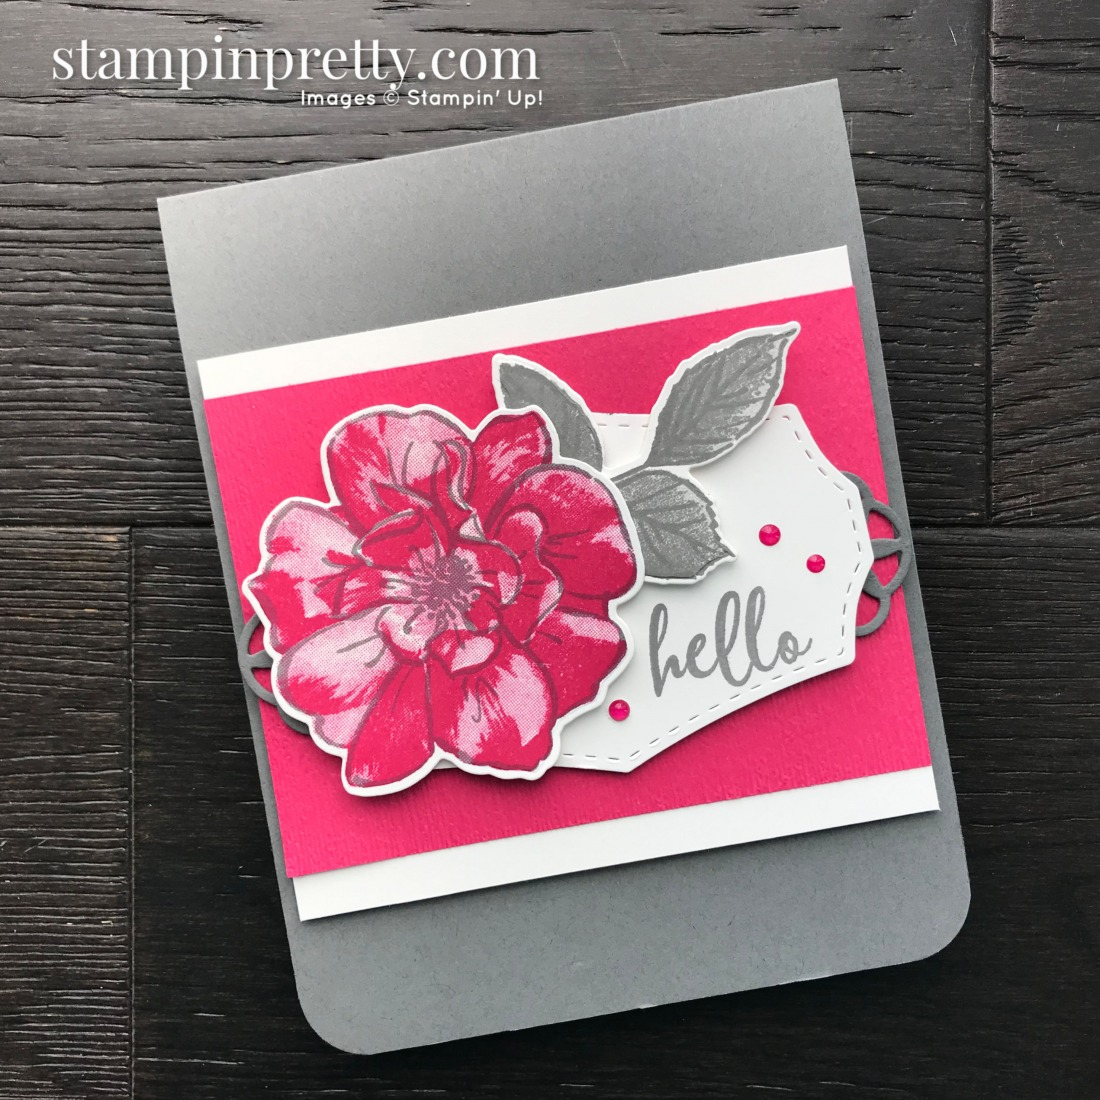 To A Wild Rose Stamp Set and Wild Rose Dies from Stampin' Up! Card by Mary Fish, Stampin' Pretty